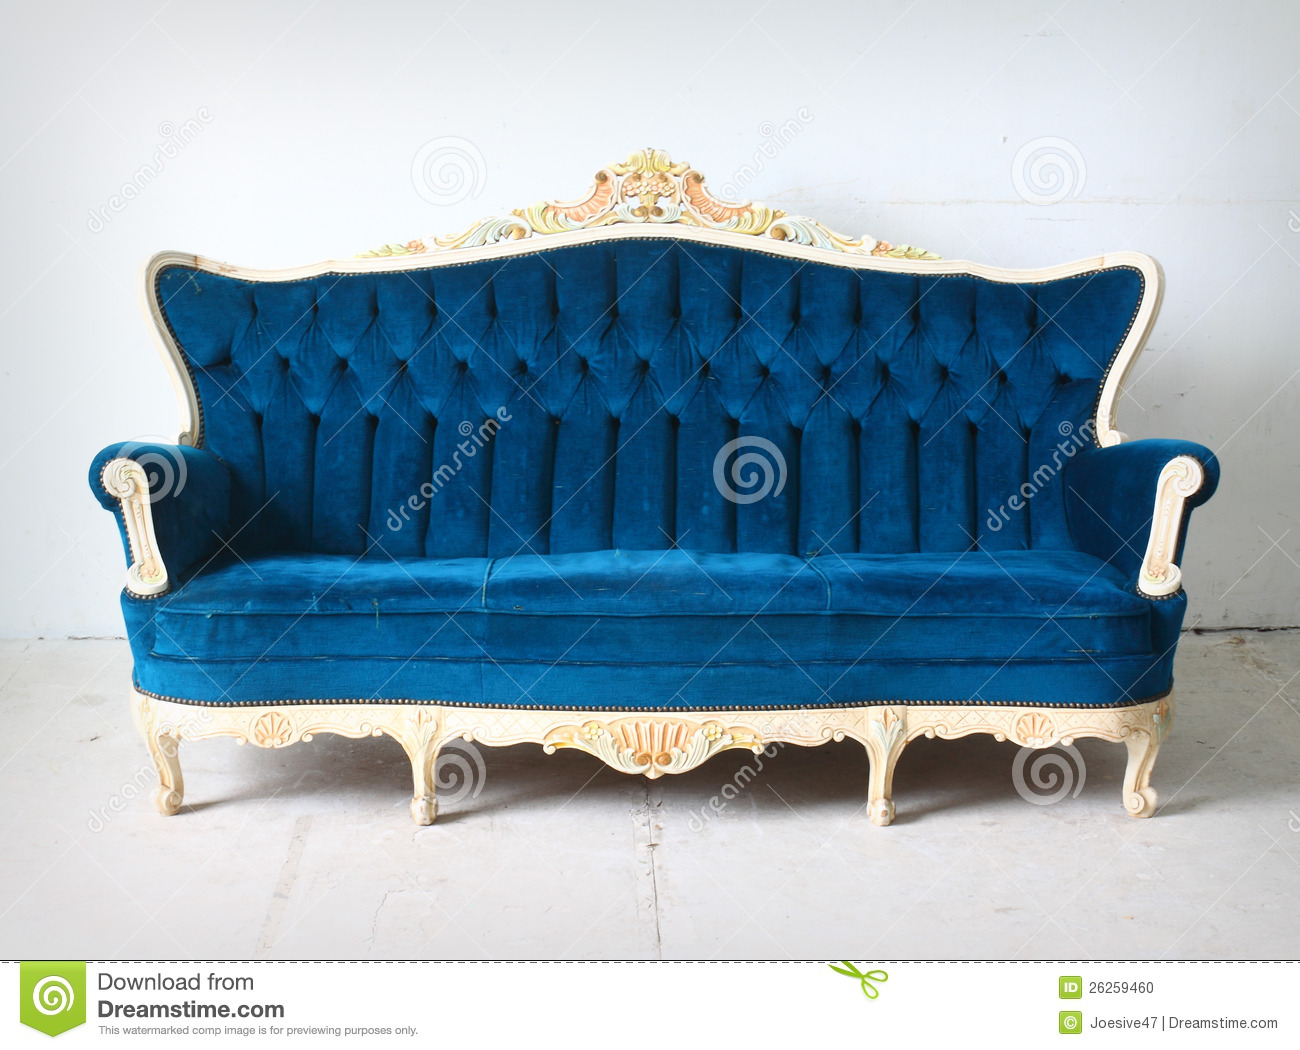 Vintage Blue Sofa In The Room Stock Photo Image 26259460